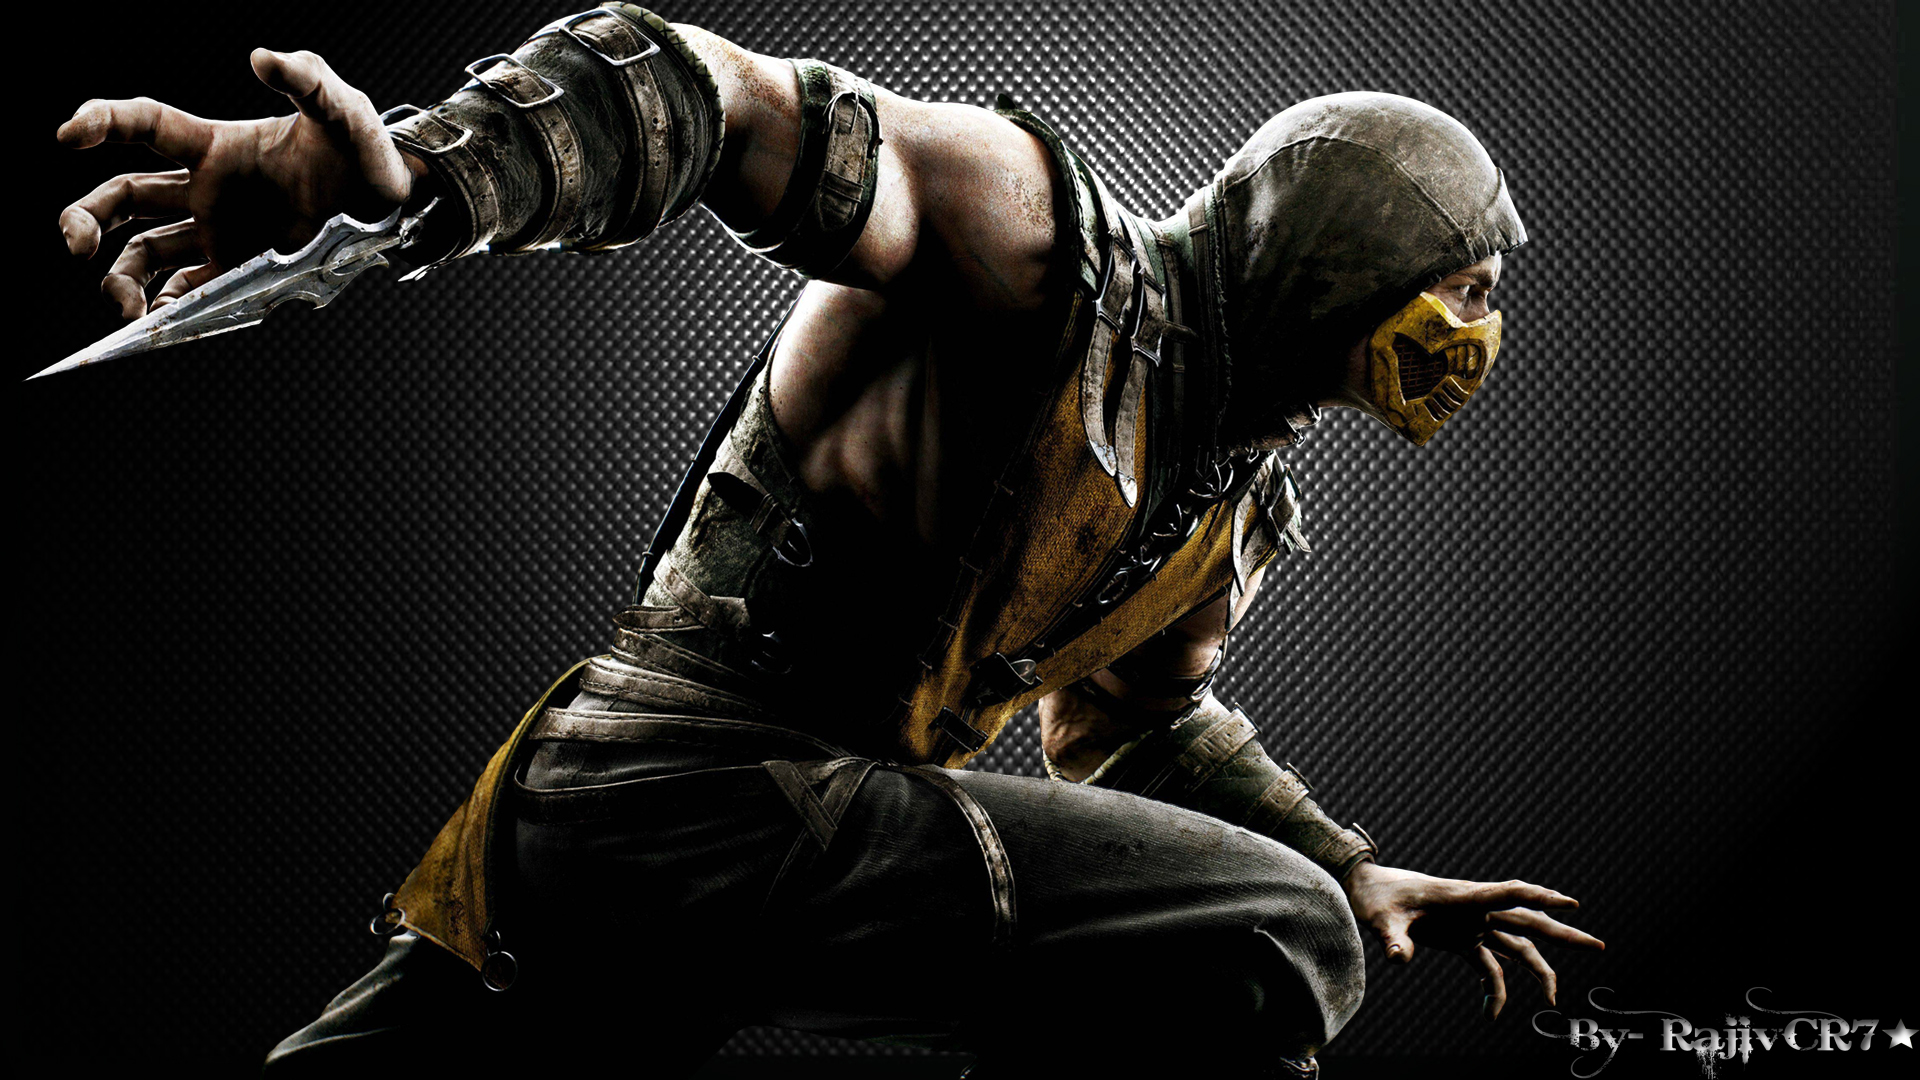 Mortal Kombat X Background: Mortal Kombat X Wallpaper